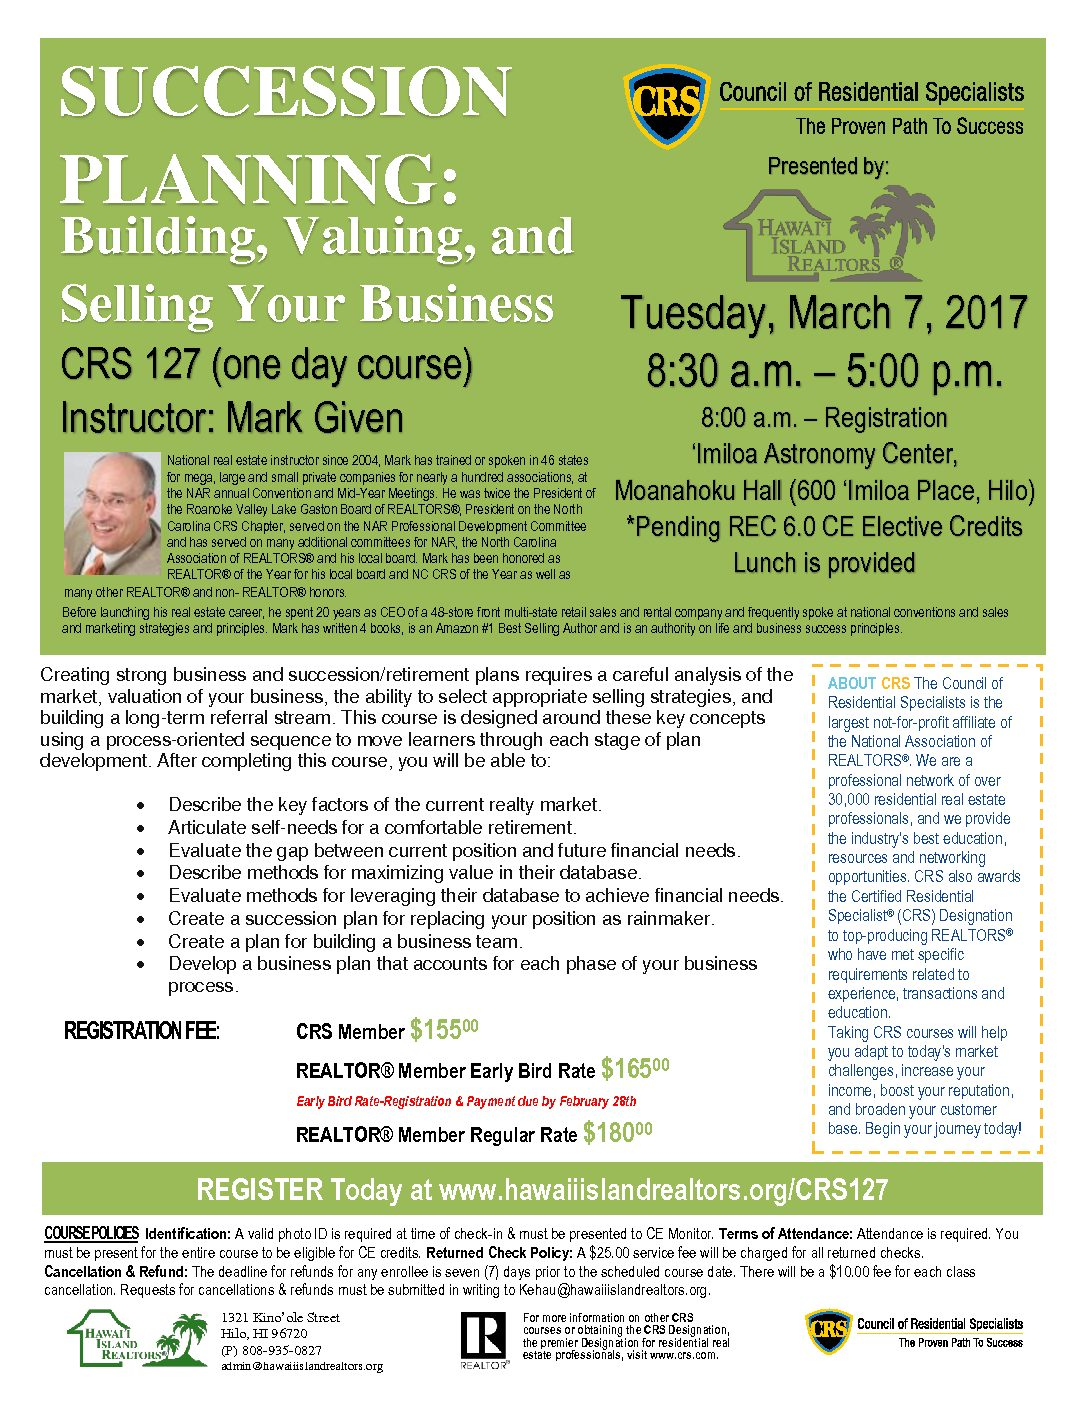 CRS 127 SUCCESSION PLANNING: Building, Valuing, and Selling Your Business